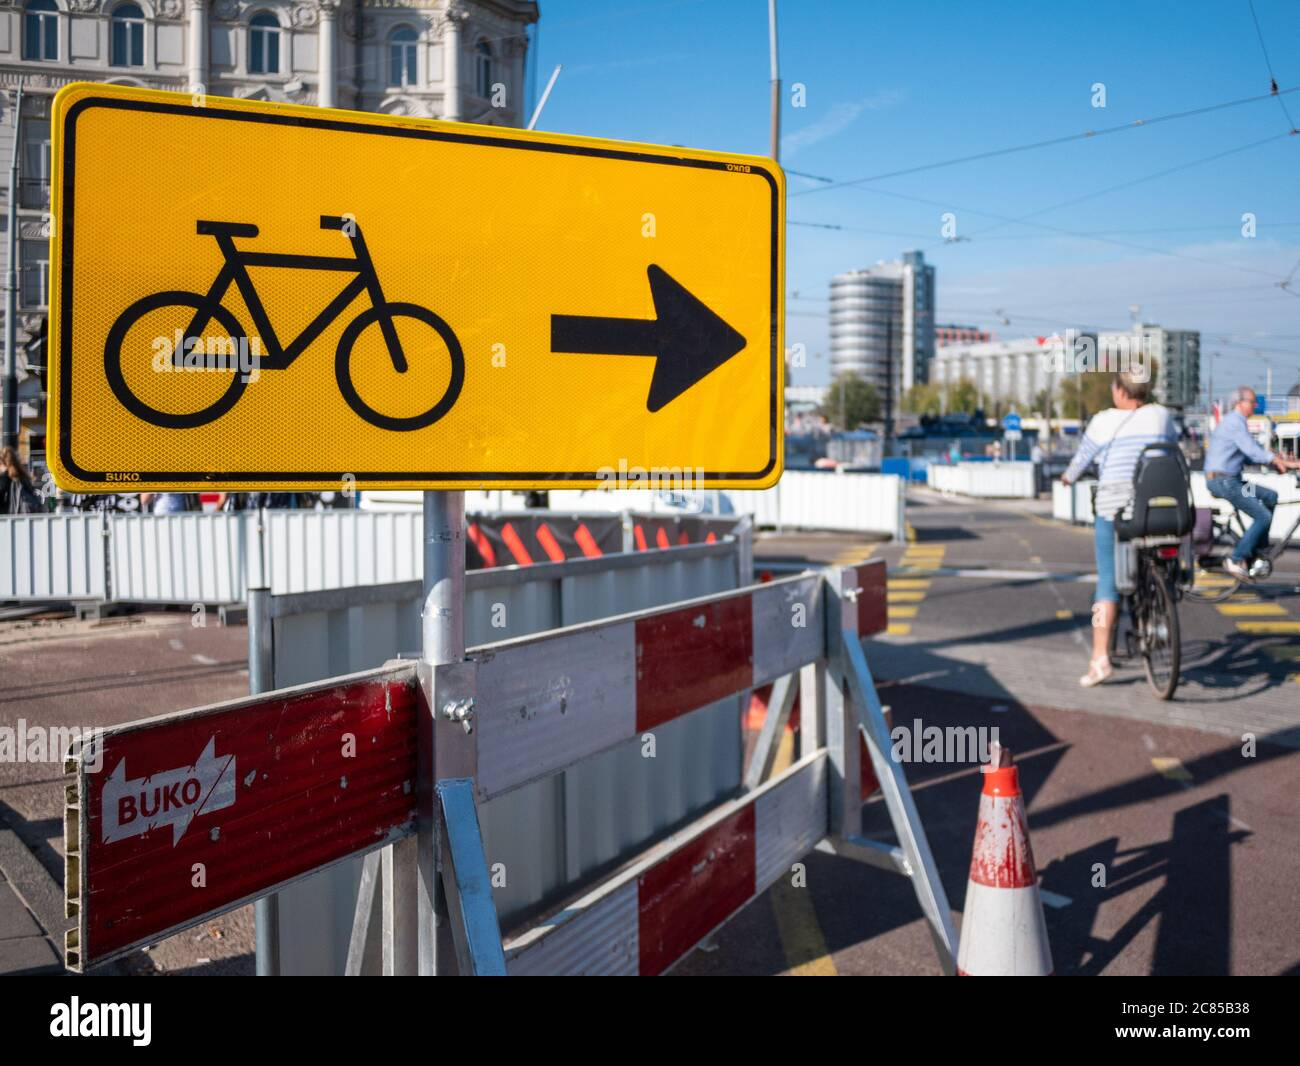 Amsterdam, Netherlands - October 15 2018: Yellow street signs directs cyclists which way to travel through the city centre Stock Photo